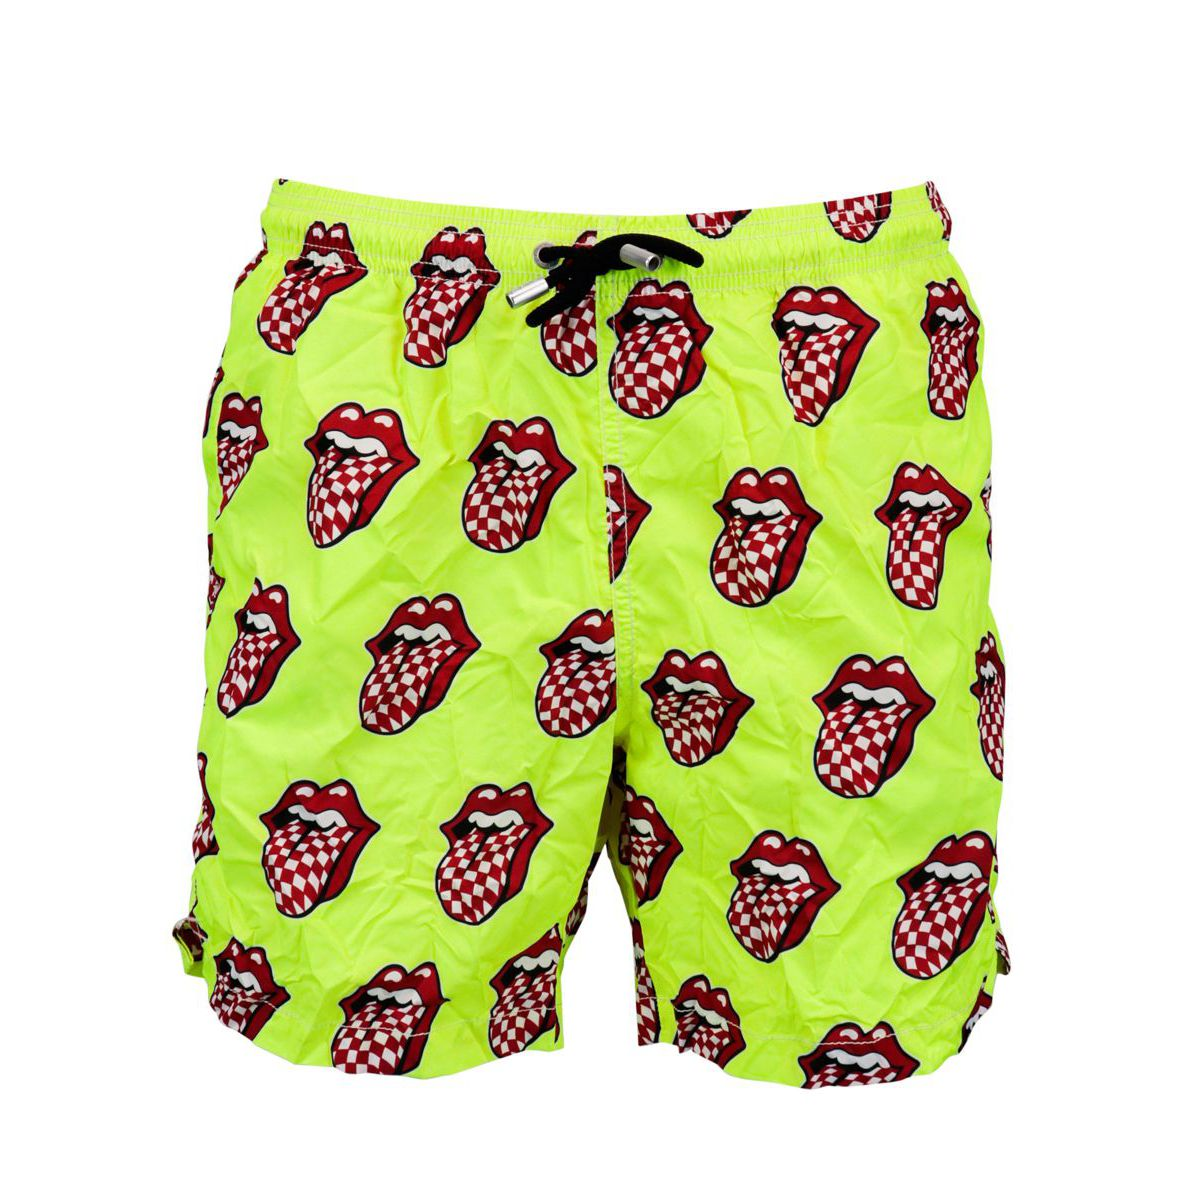 Nylon boxer costume with Rolling Stones print - Limited edition Yellow MC2 Saint Barth